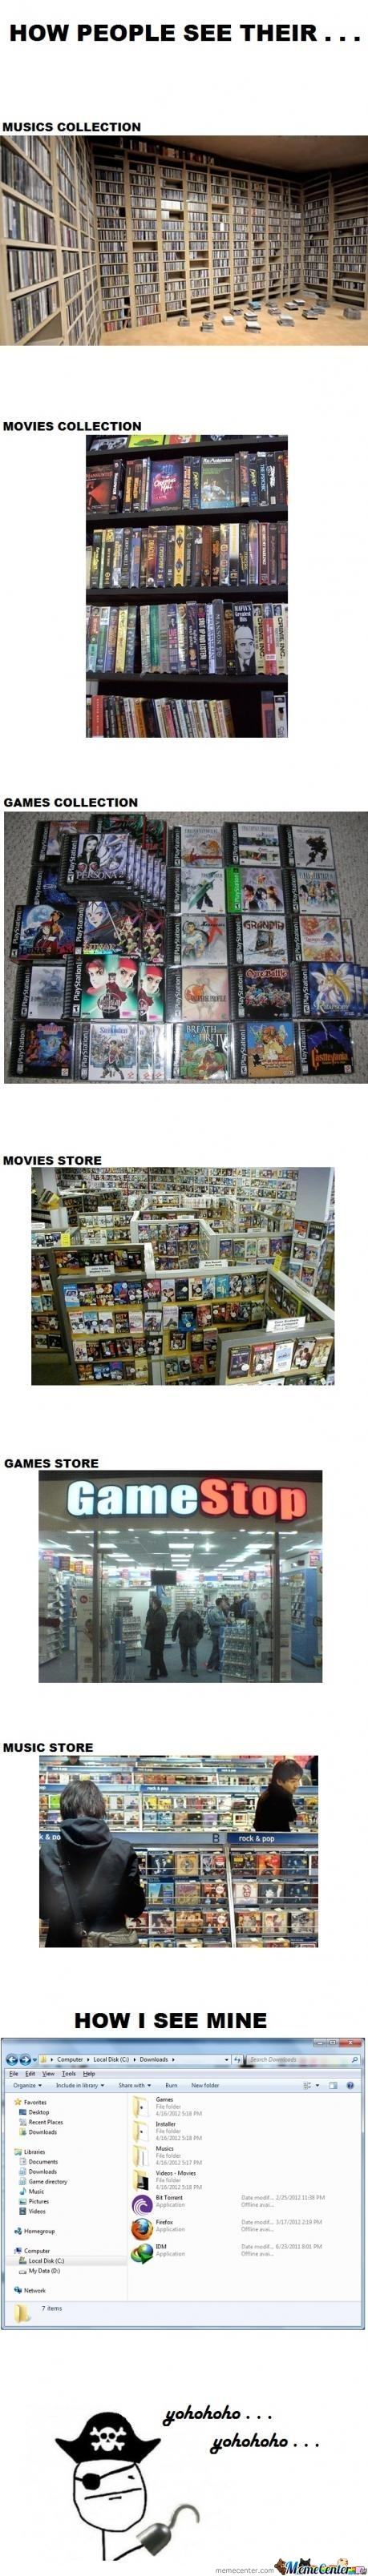 Music, Movies and Game Collections